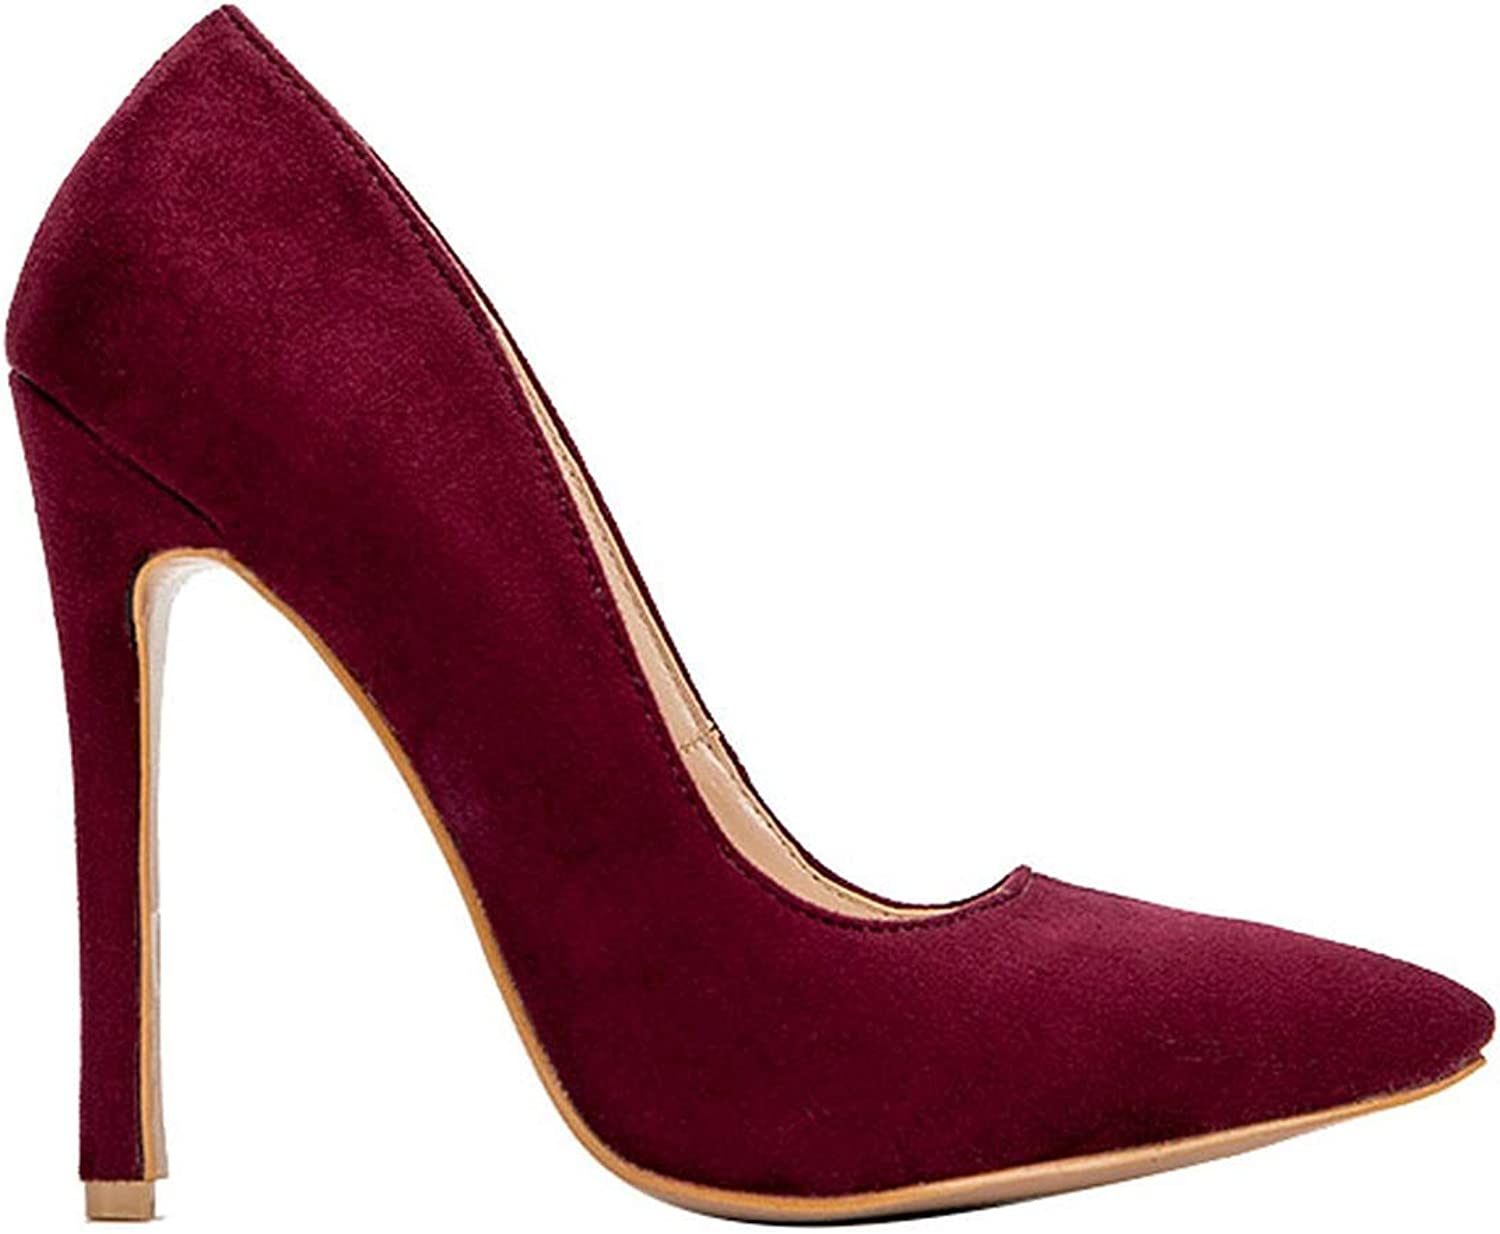 Woman High Heels Pumps Thin Heels shoes Flock Office Slip-On Shallow Solid Pointed Heel Pump Red Wine,8.5